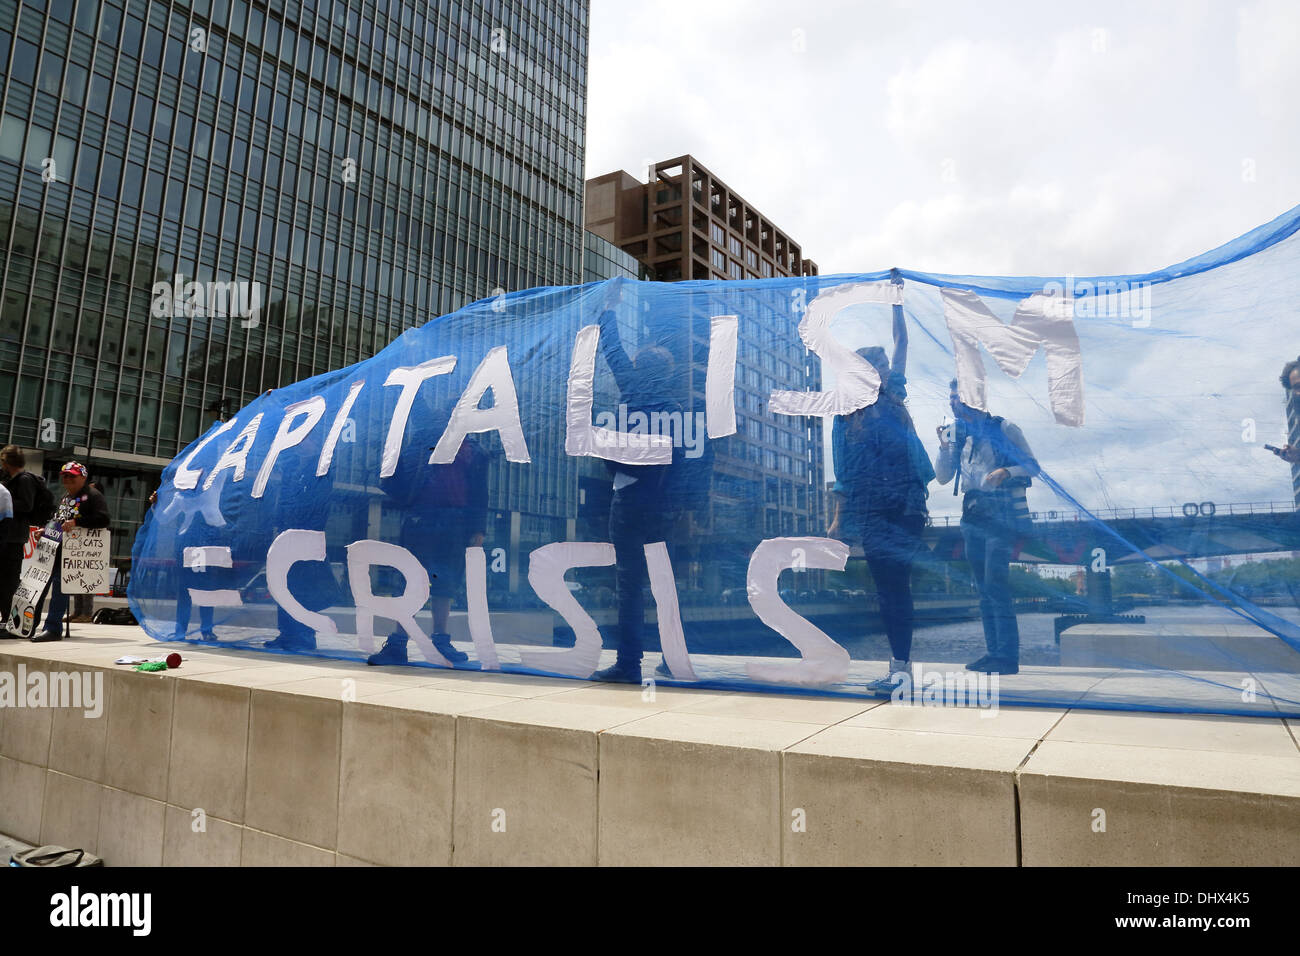 Anti-G8 activists rally in London banking district. - Stock Image